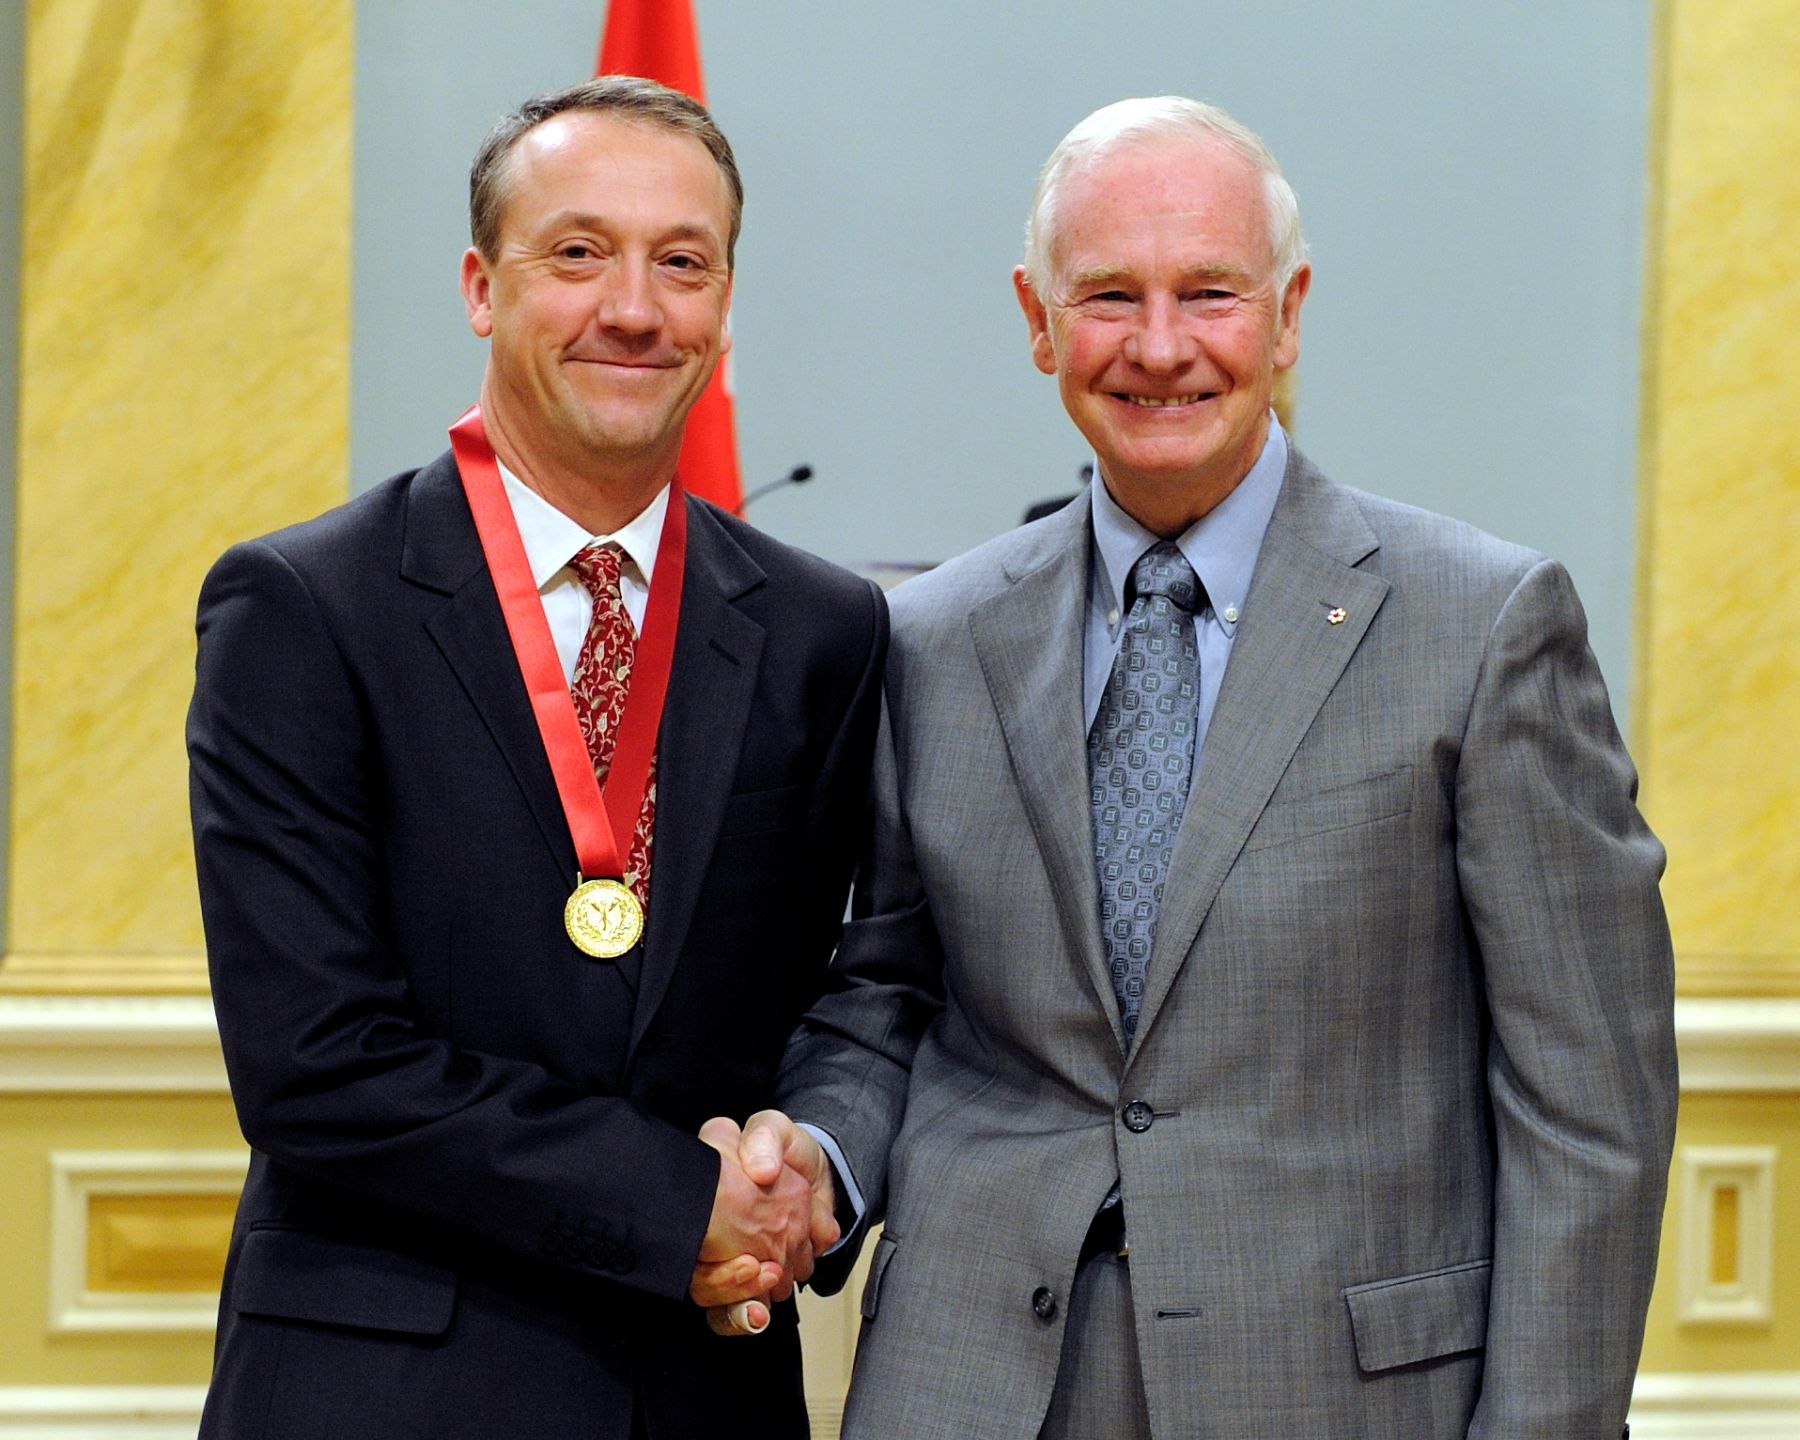 Mr. Adrian Charles French from Mount Douglas Secondary School in Victoria in British Columbia, received the Governor General's Awards for Excellence in Teaching Canadian History for his innovative and interactive teaching concepts.